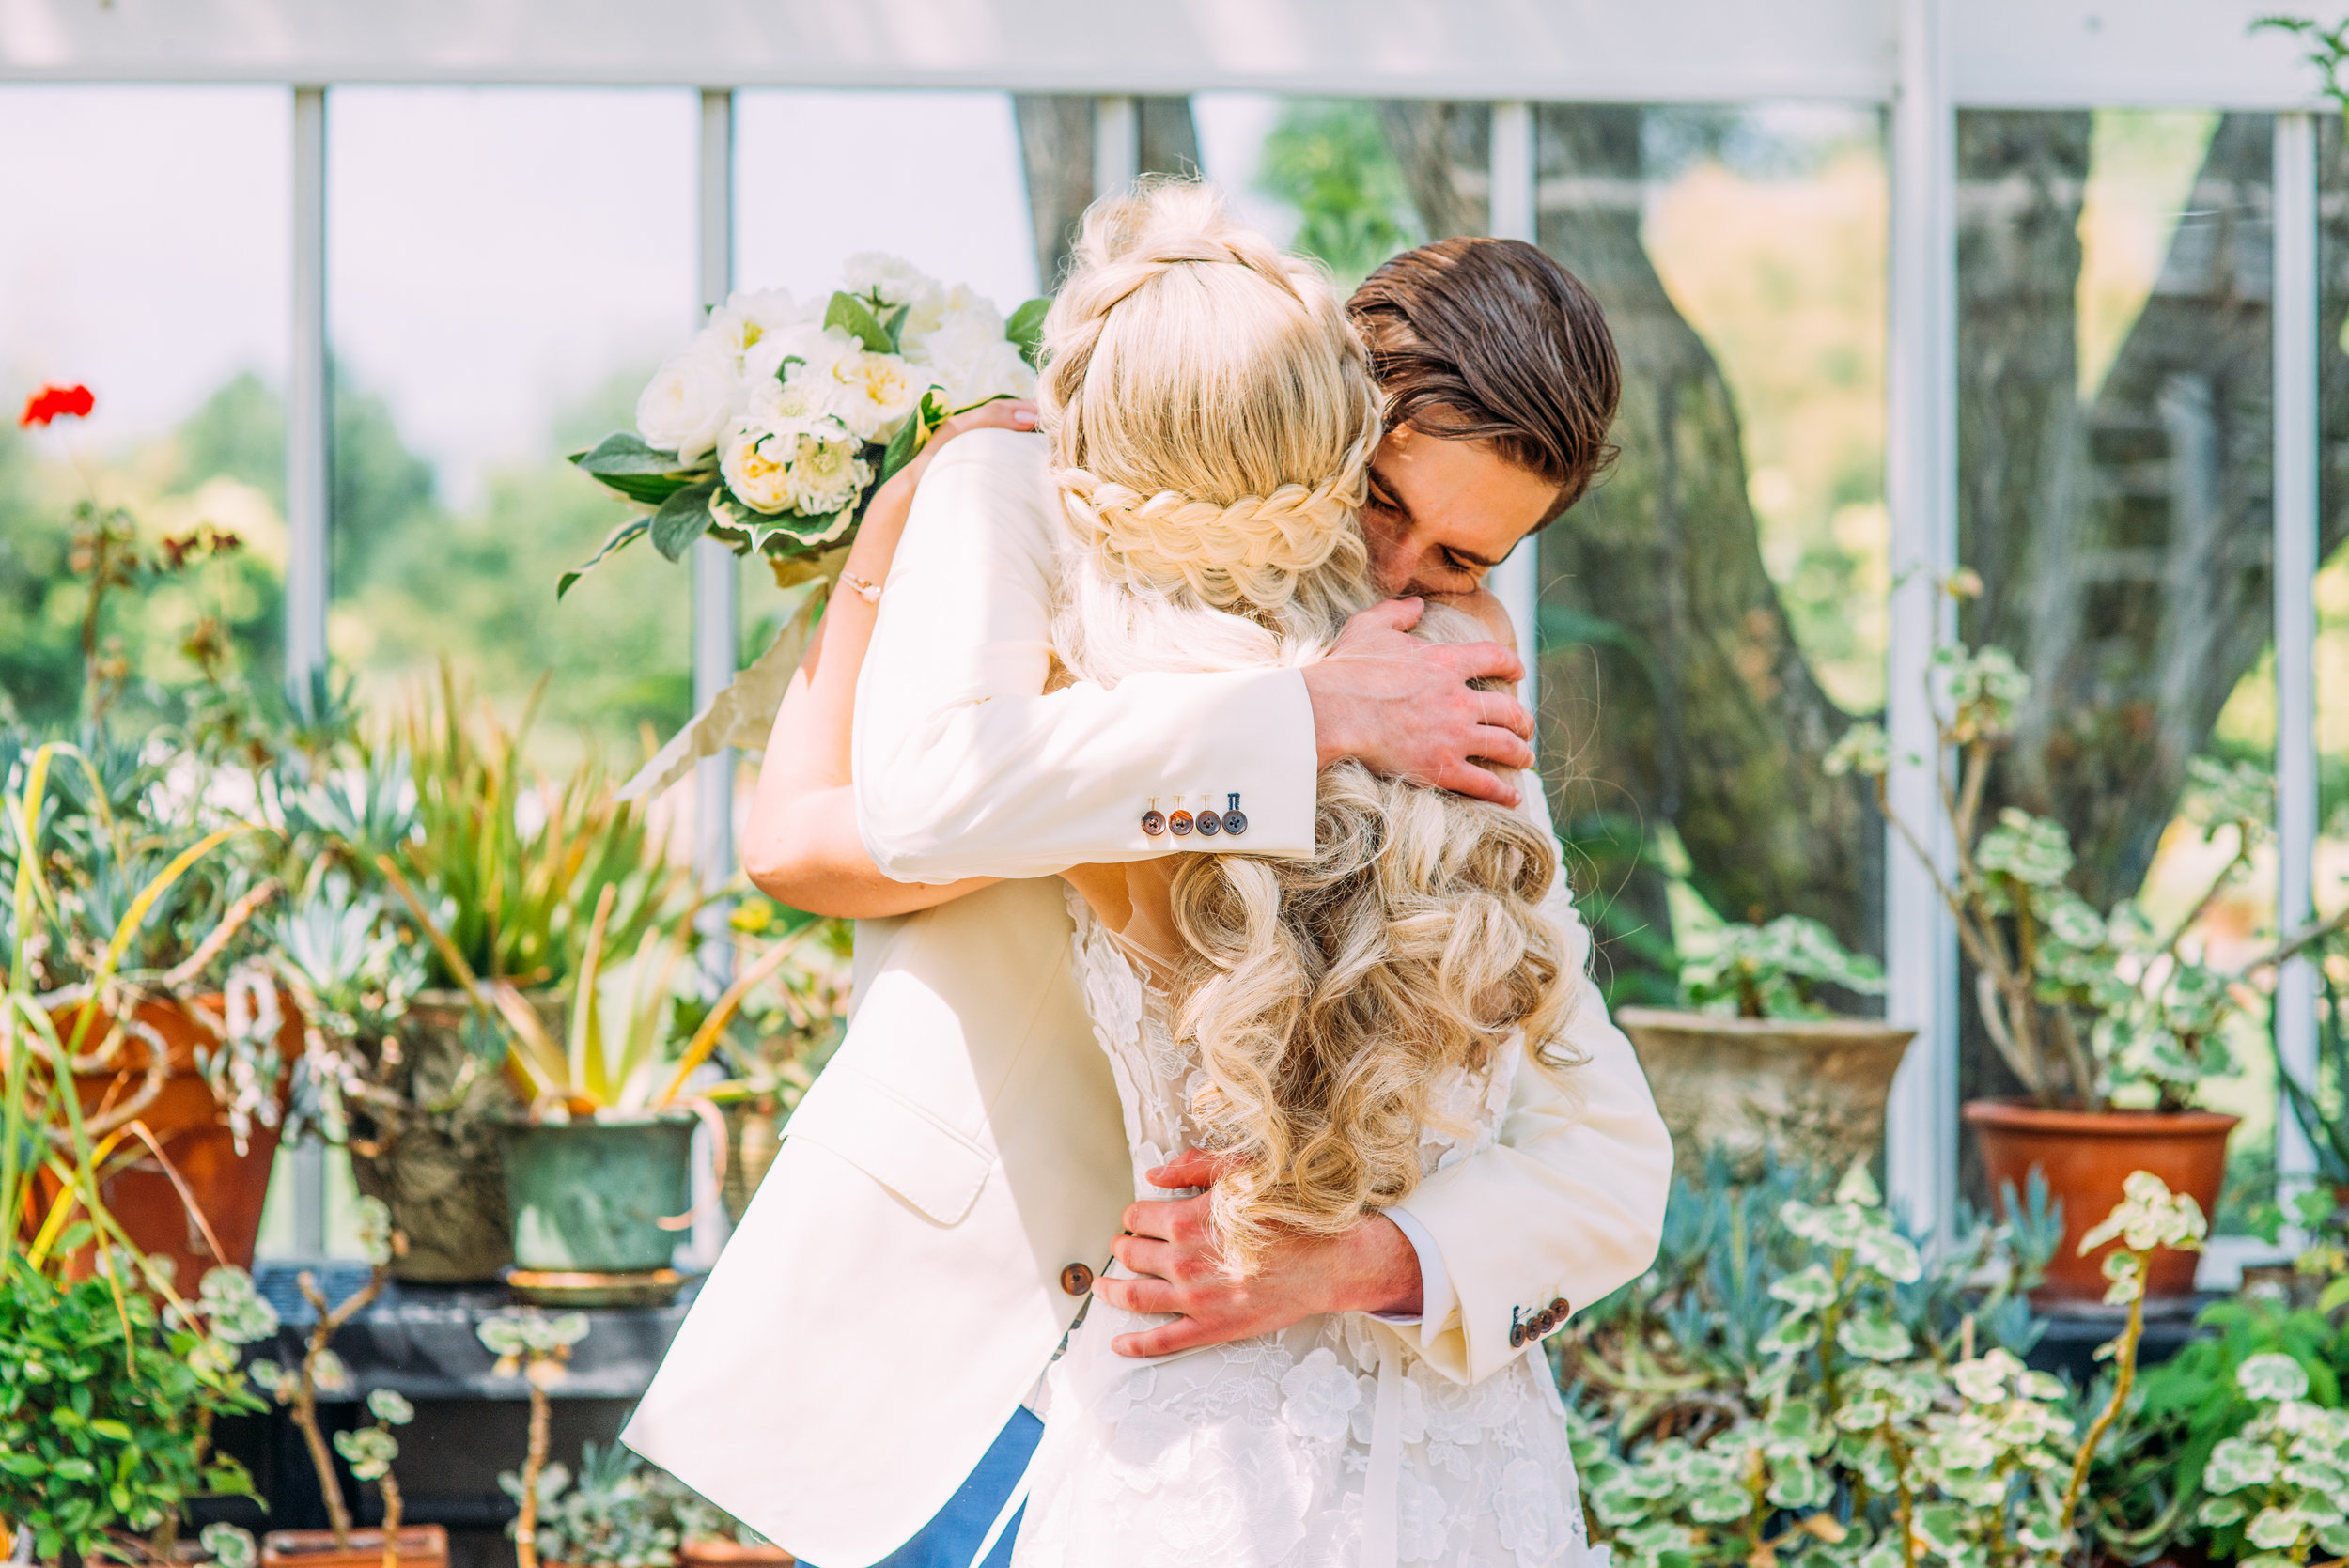 katie stoops photography-inn at perry cabin wedding15.jpg